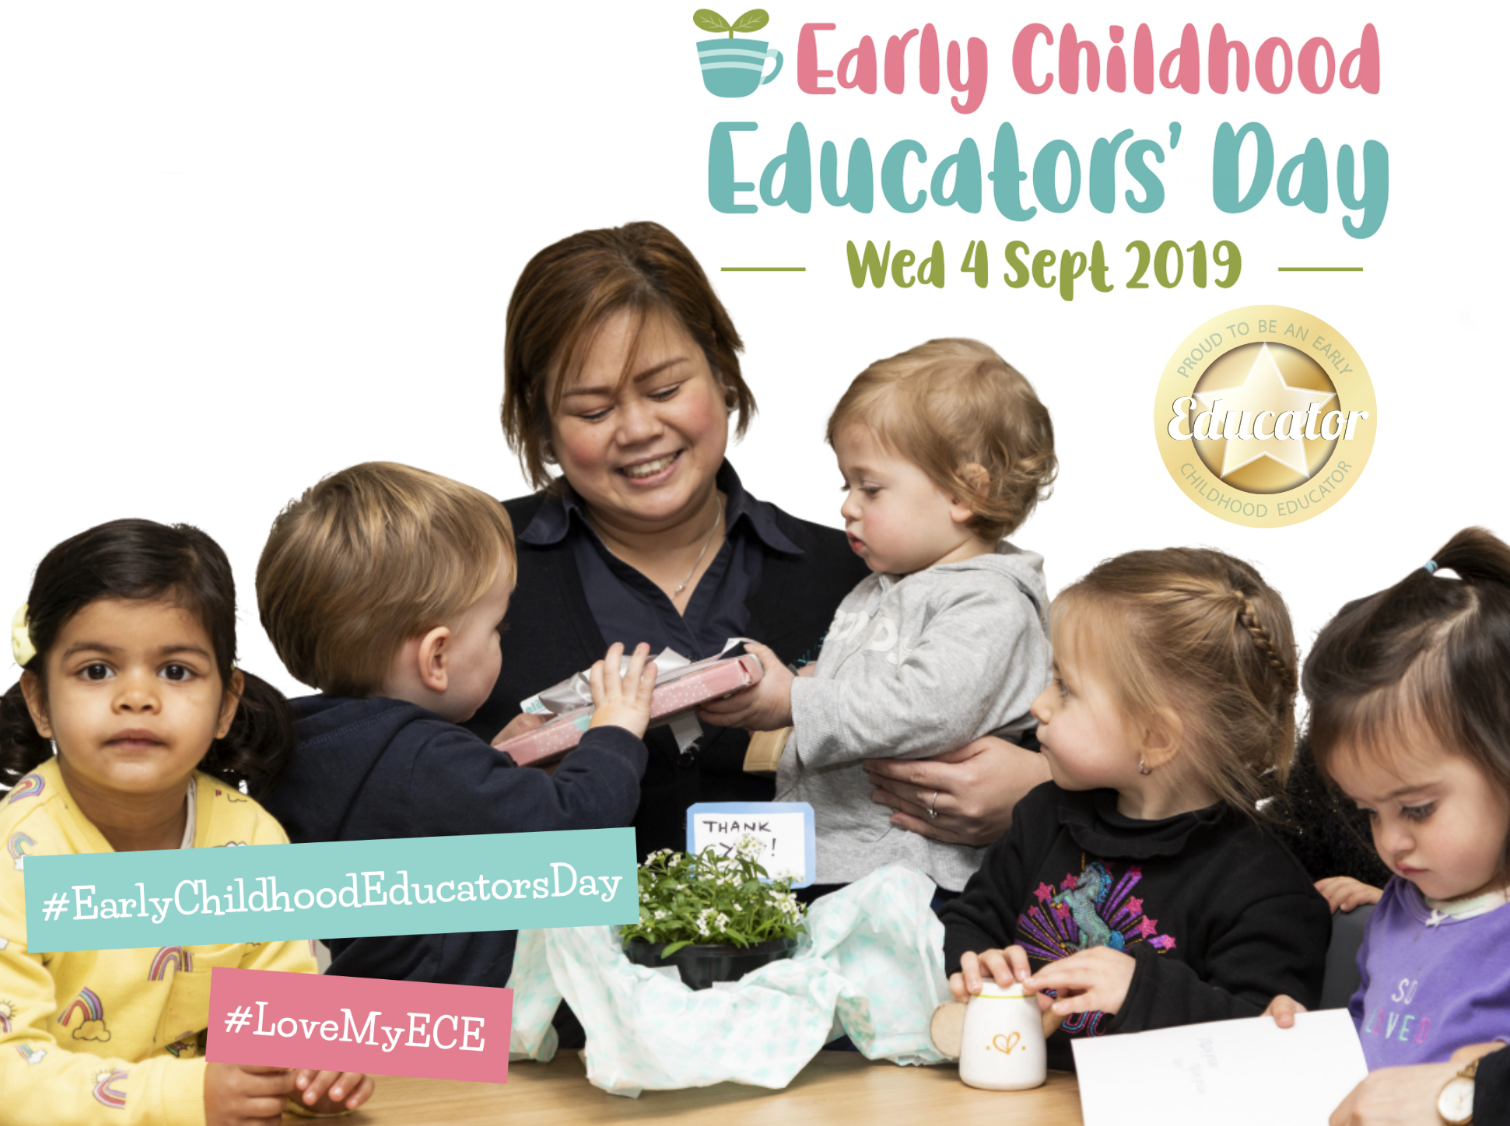 From  https://earlychildhoodeducatorsday.org.au/